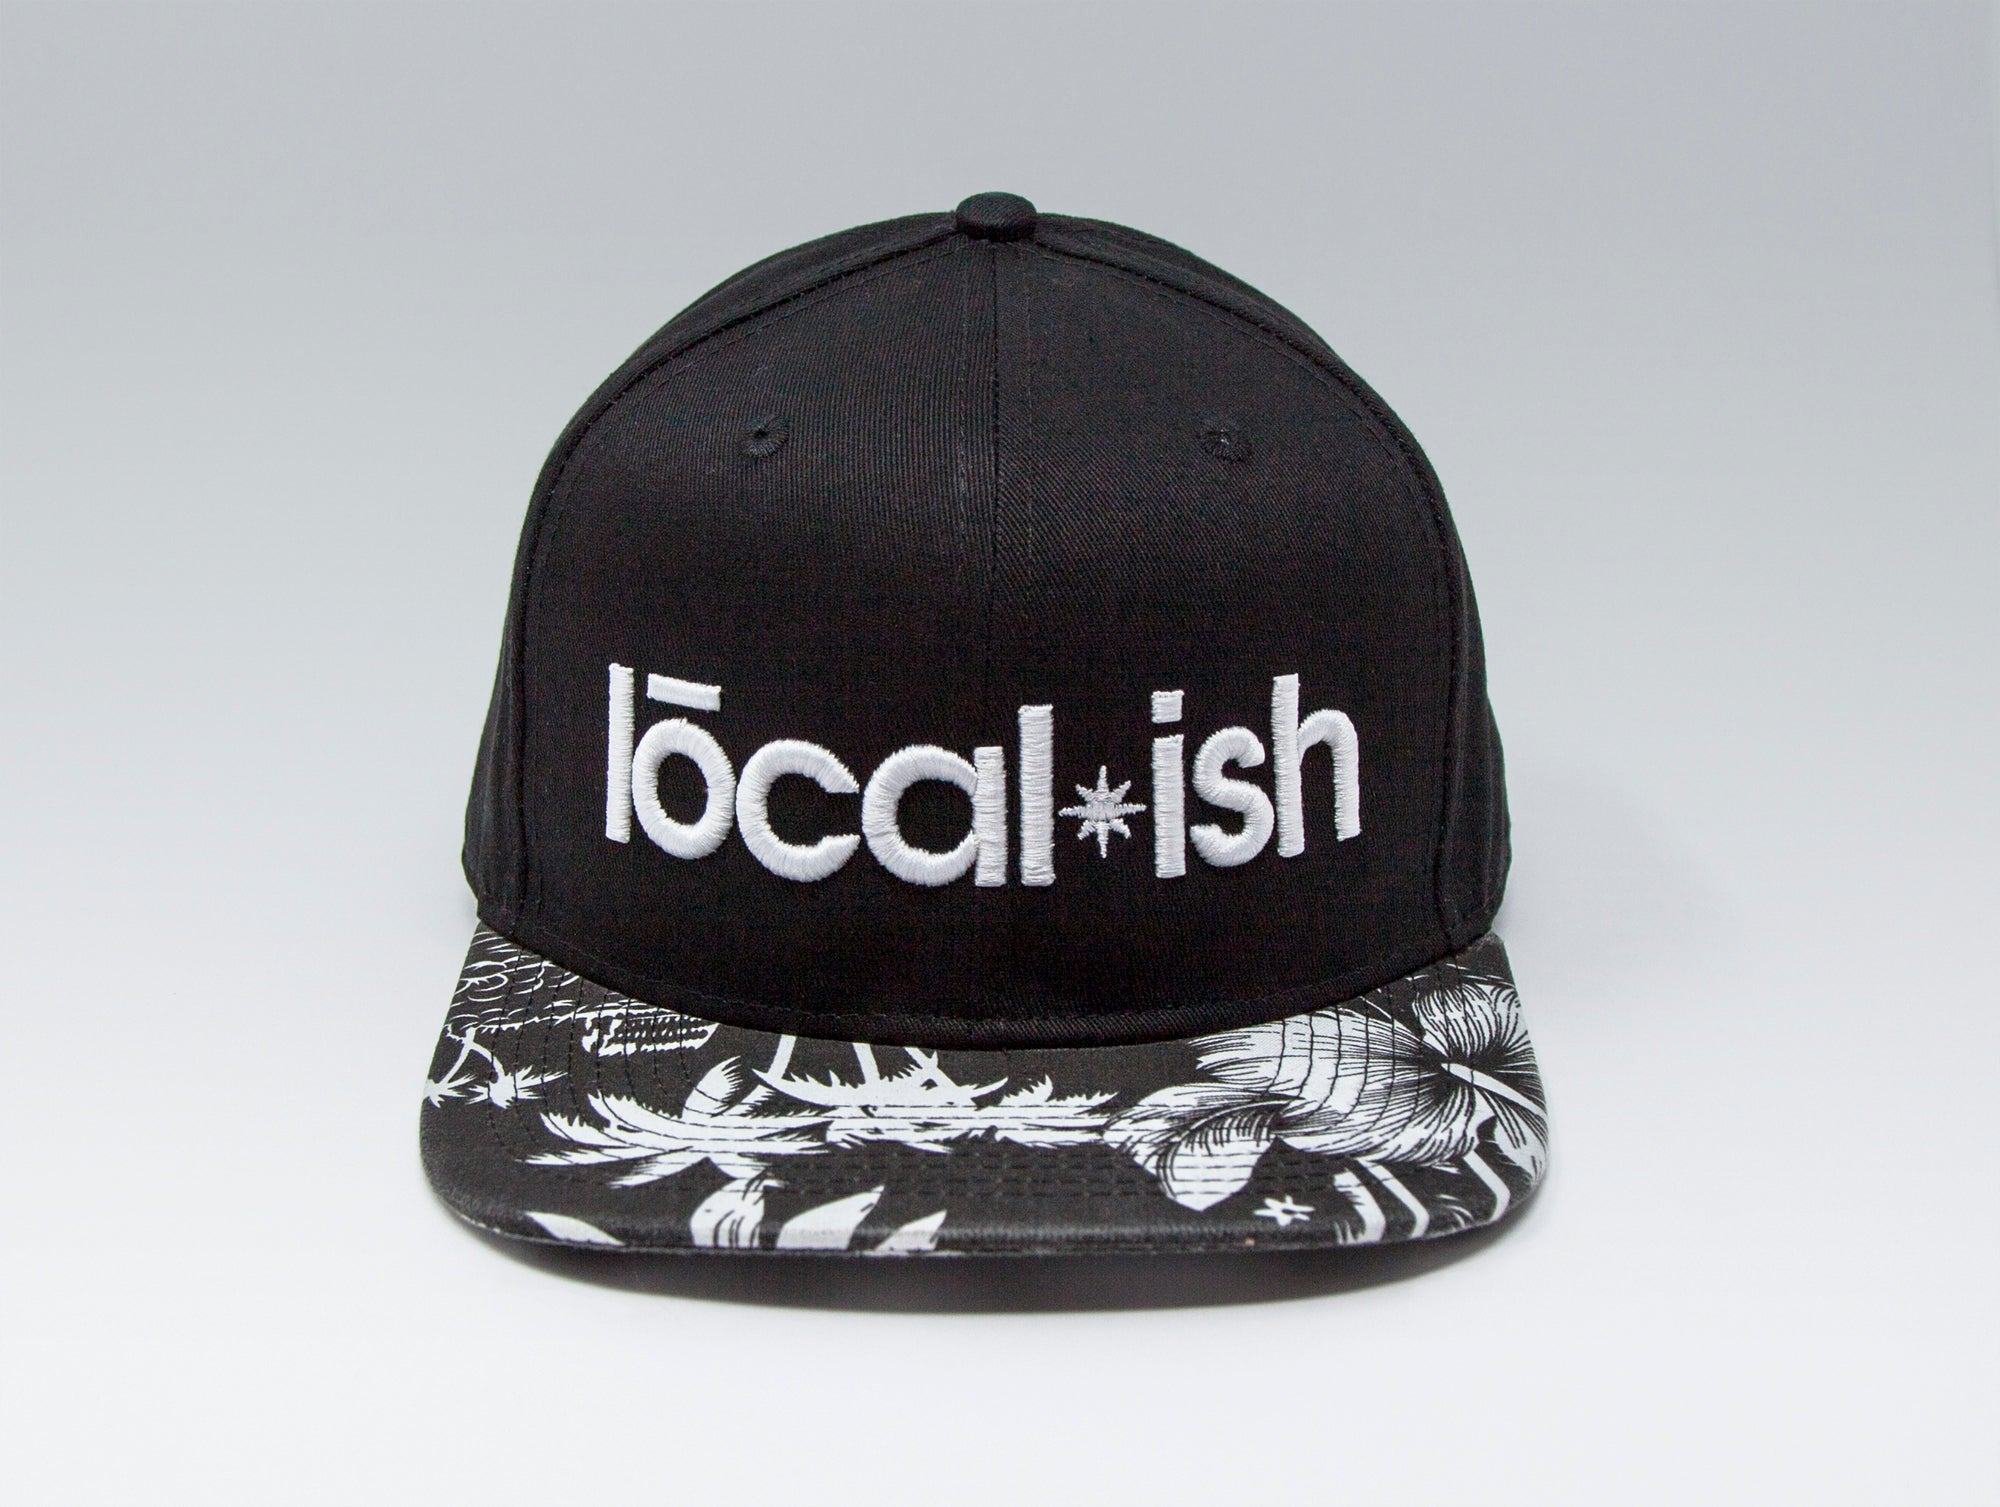 Localish Classic Snapback Hat - Palm Trees - center